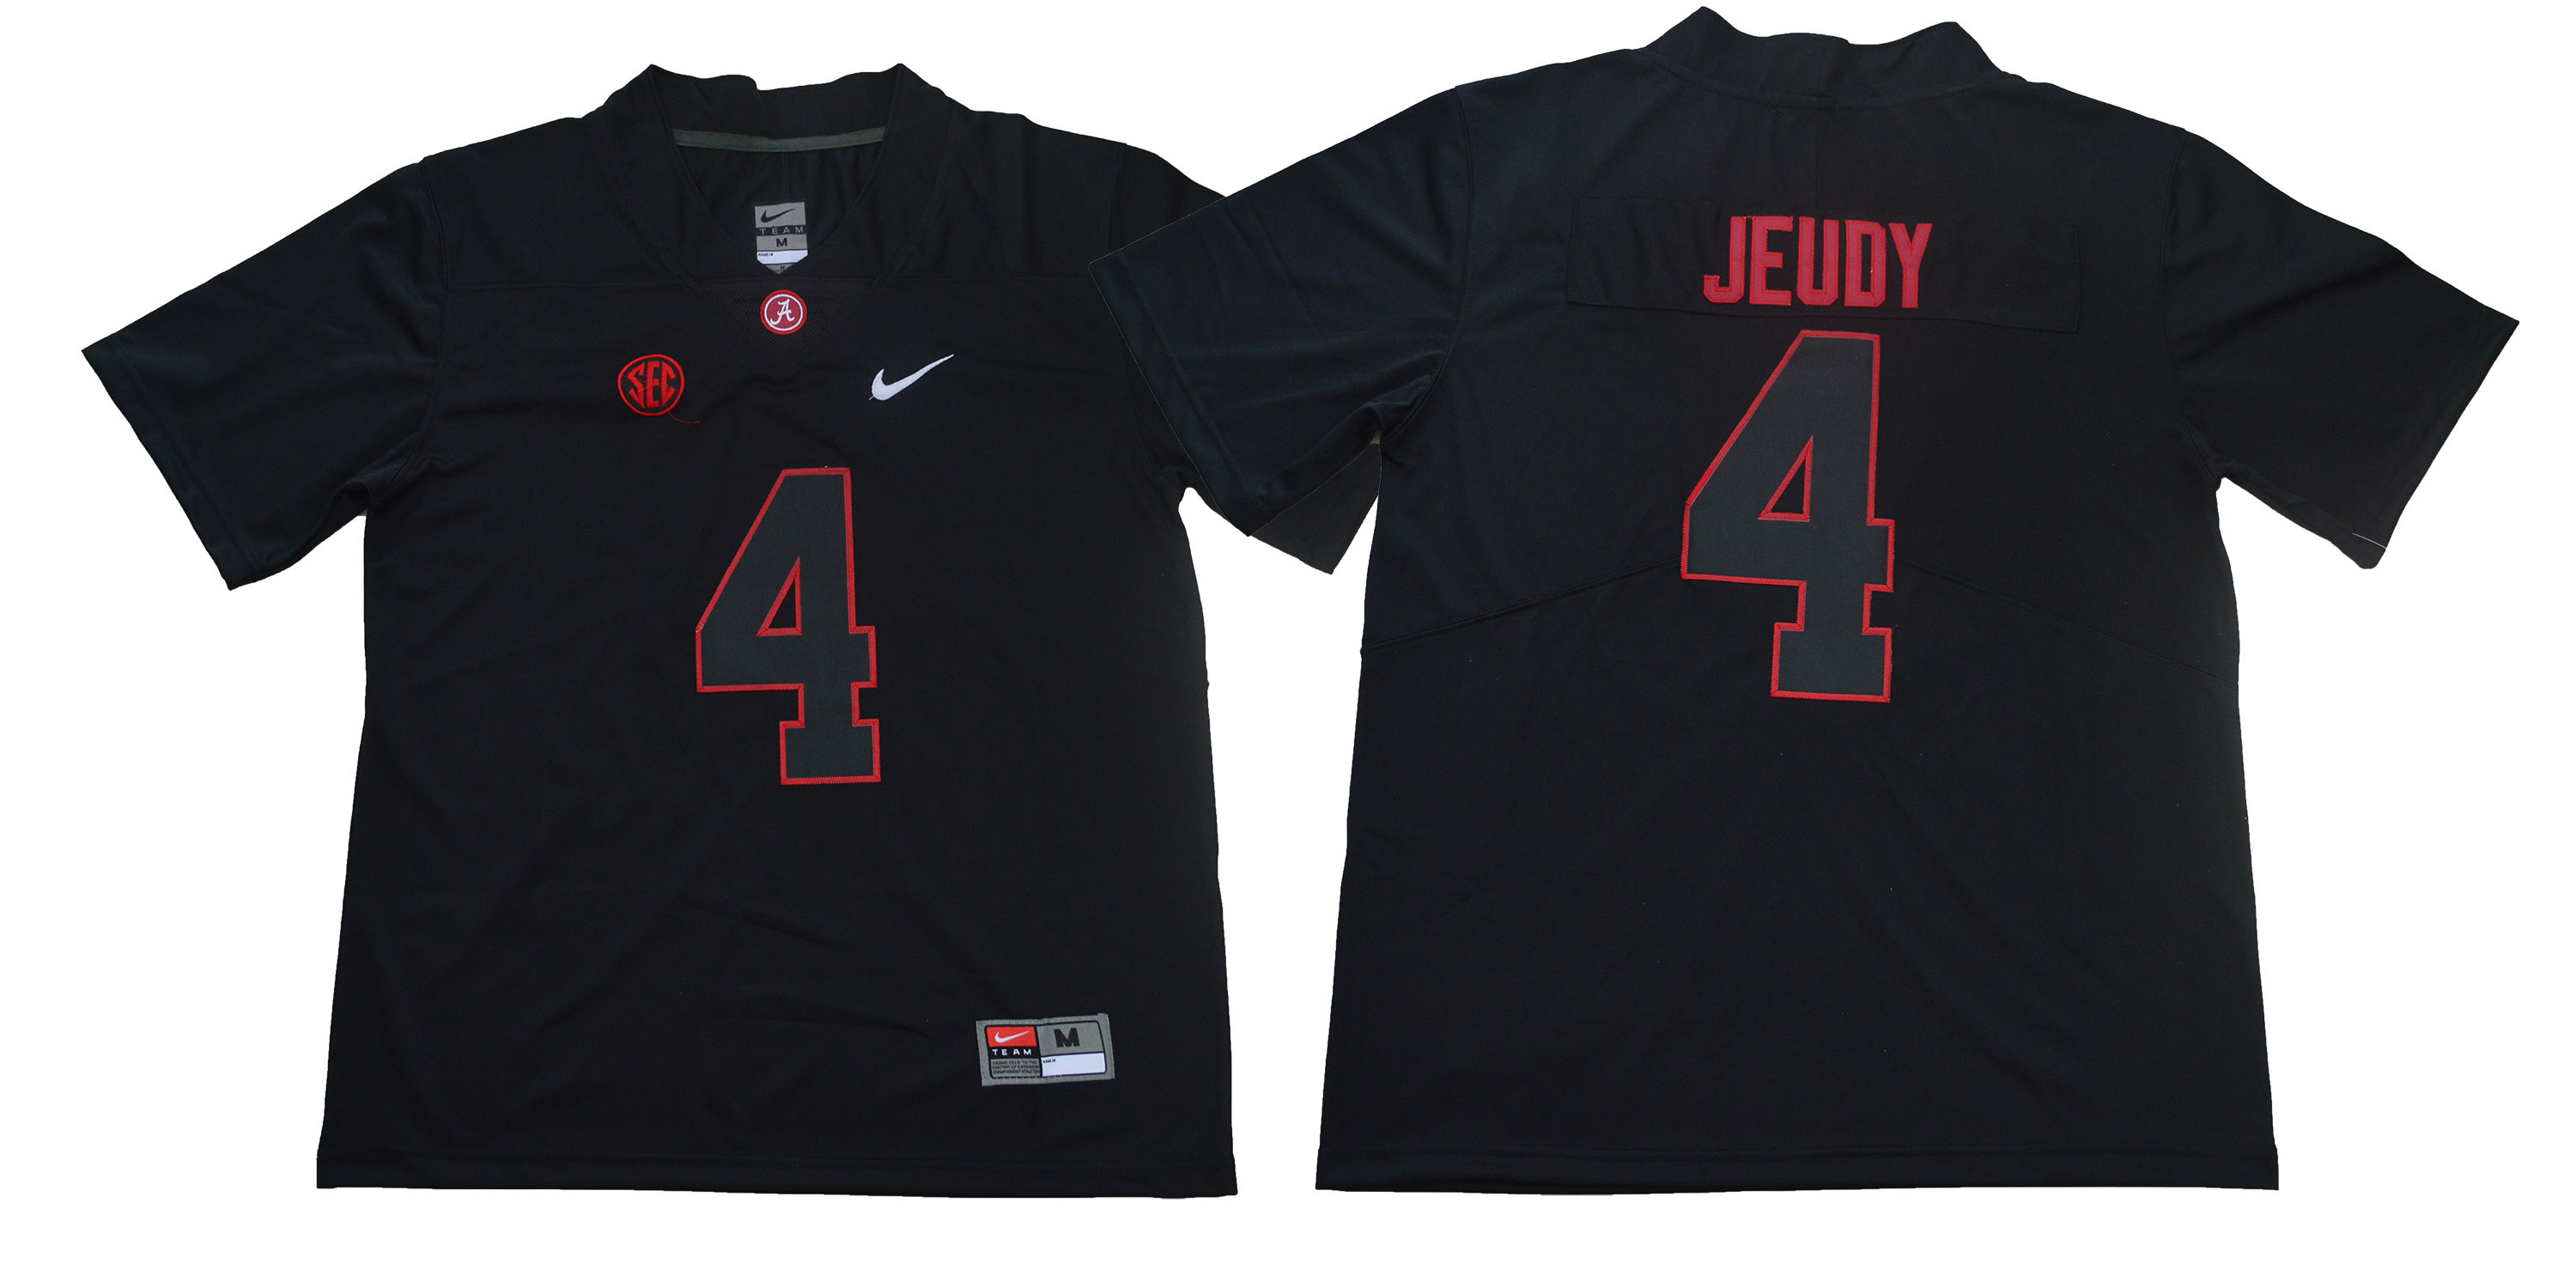 Alabama Crimson Tide 4 Jerry Jeudy Black Shadow Nike College Football Jersey